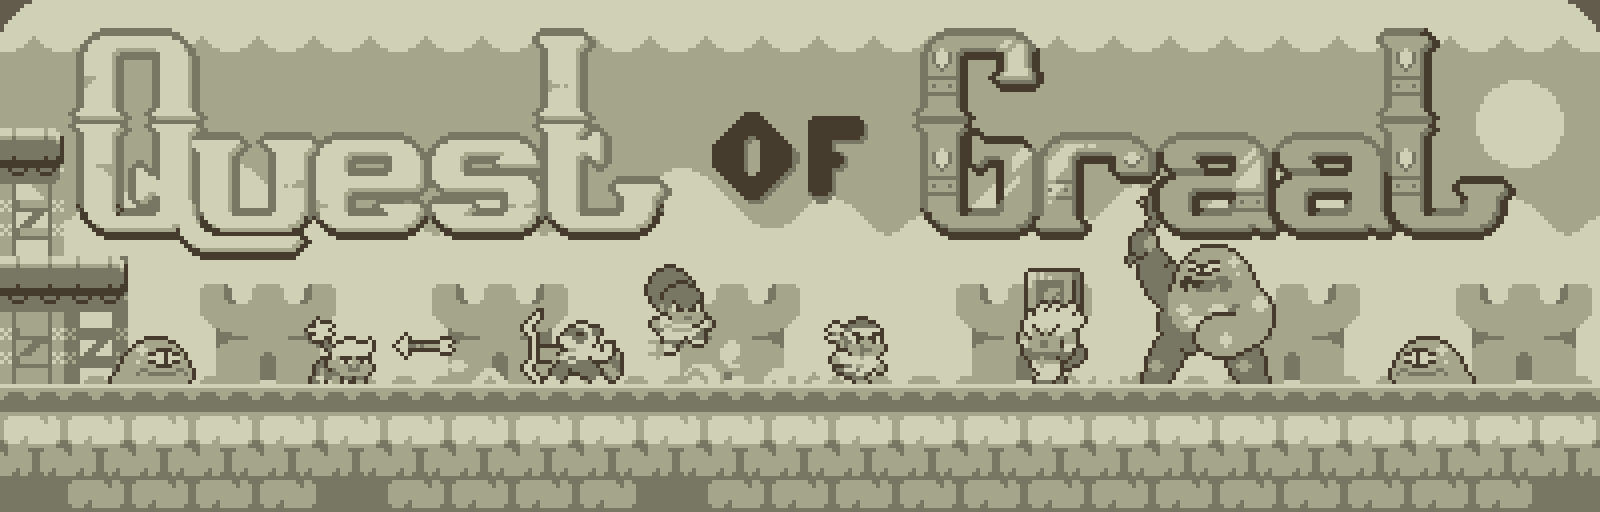 Quest Of Graal